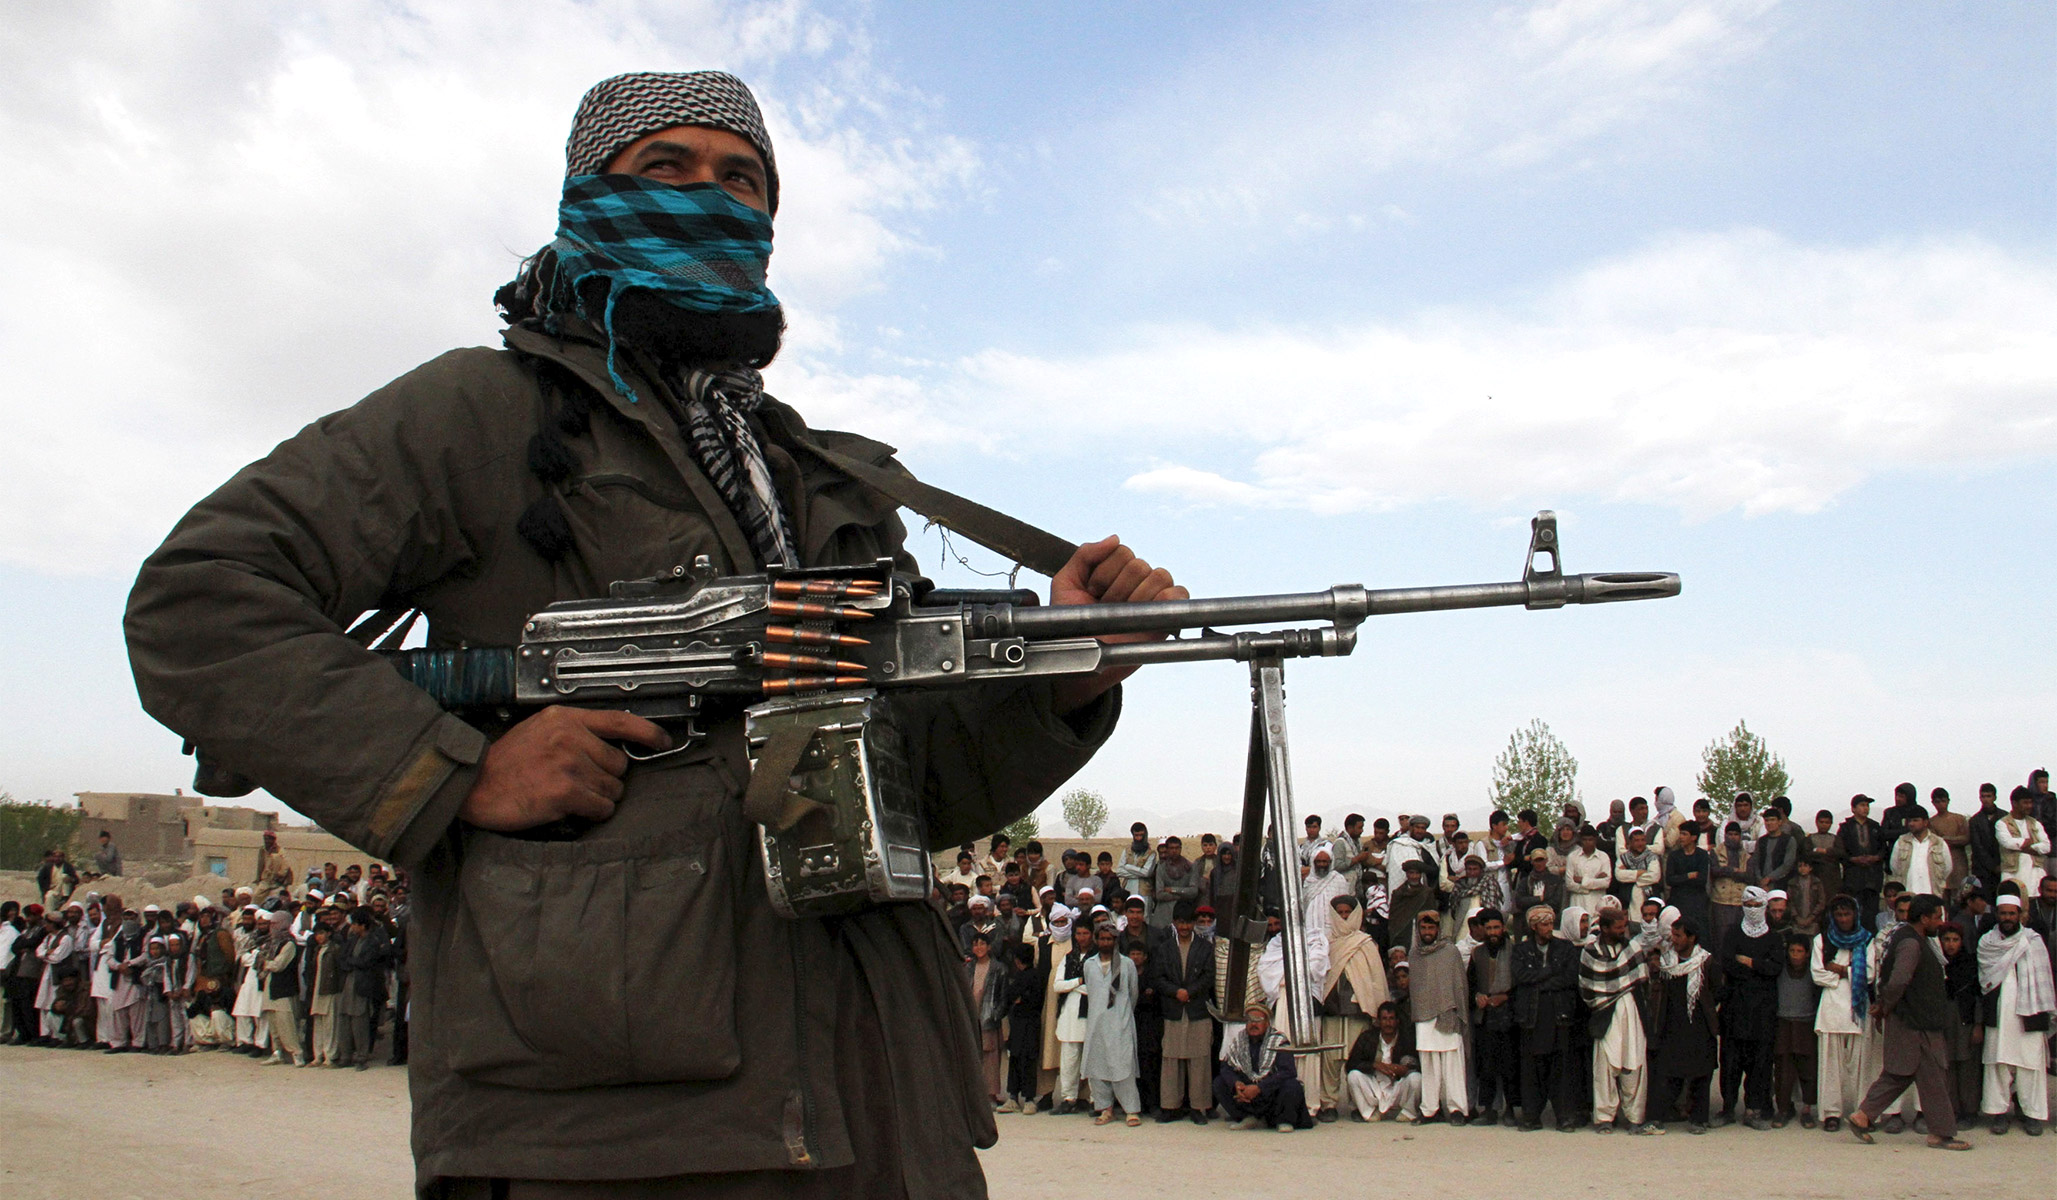 Taliban Terrorists Have No Place at Camp David